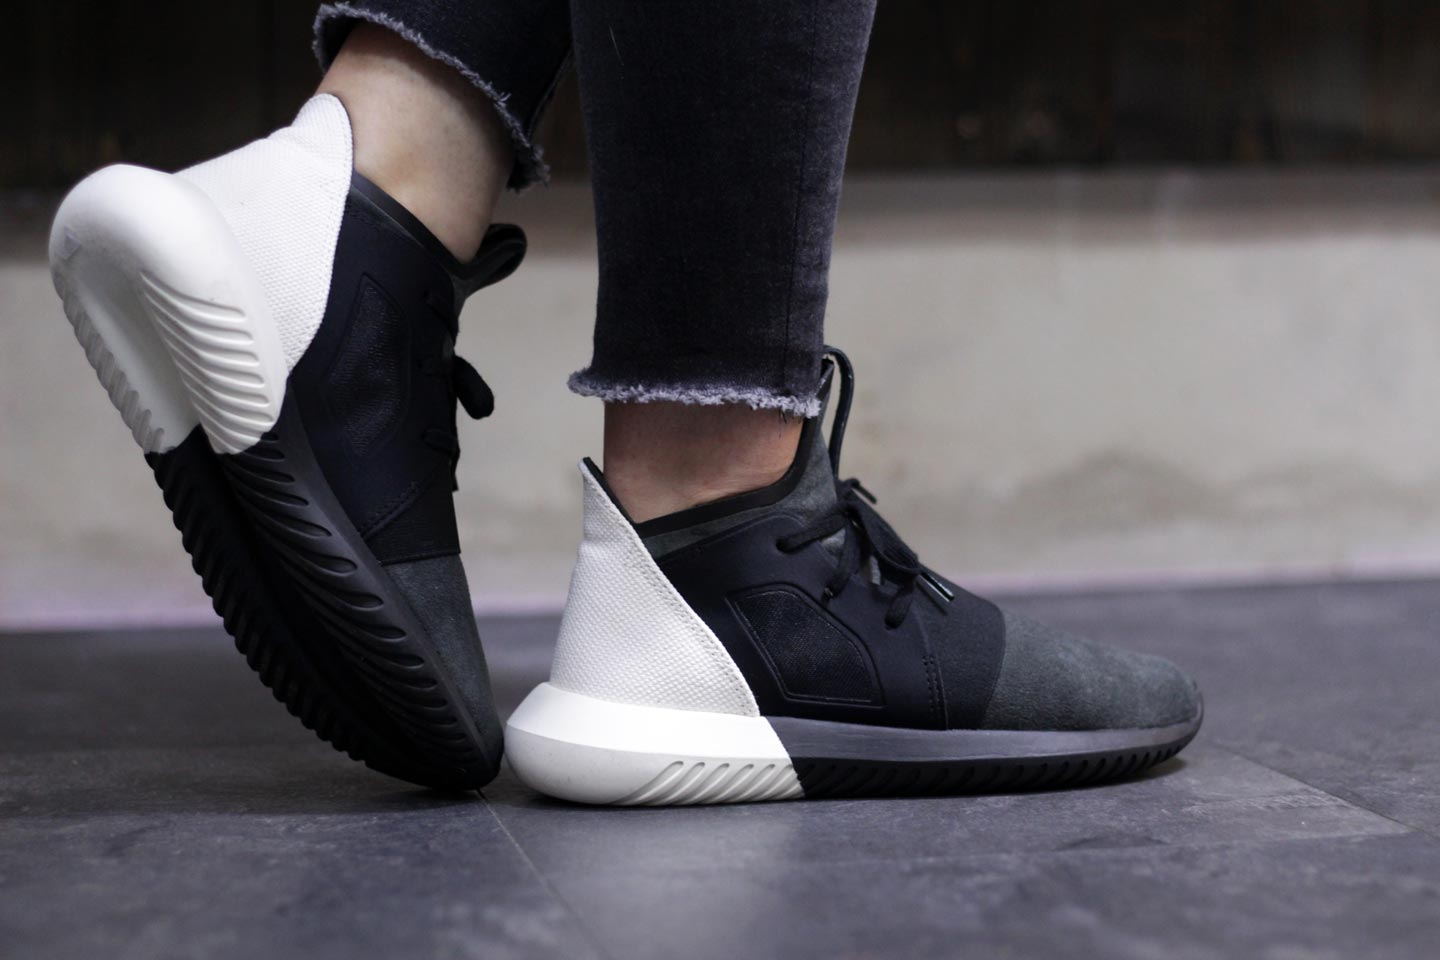 Adidas Tubular Defiant Core Black Off White